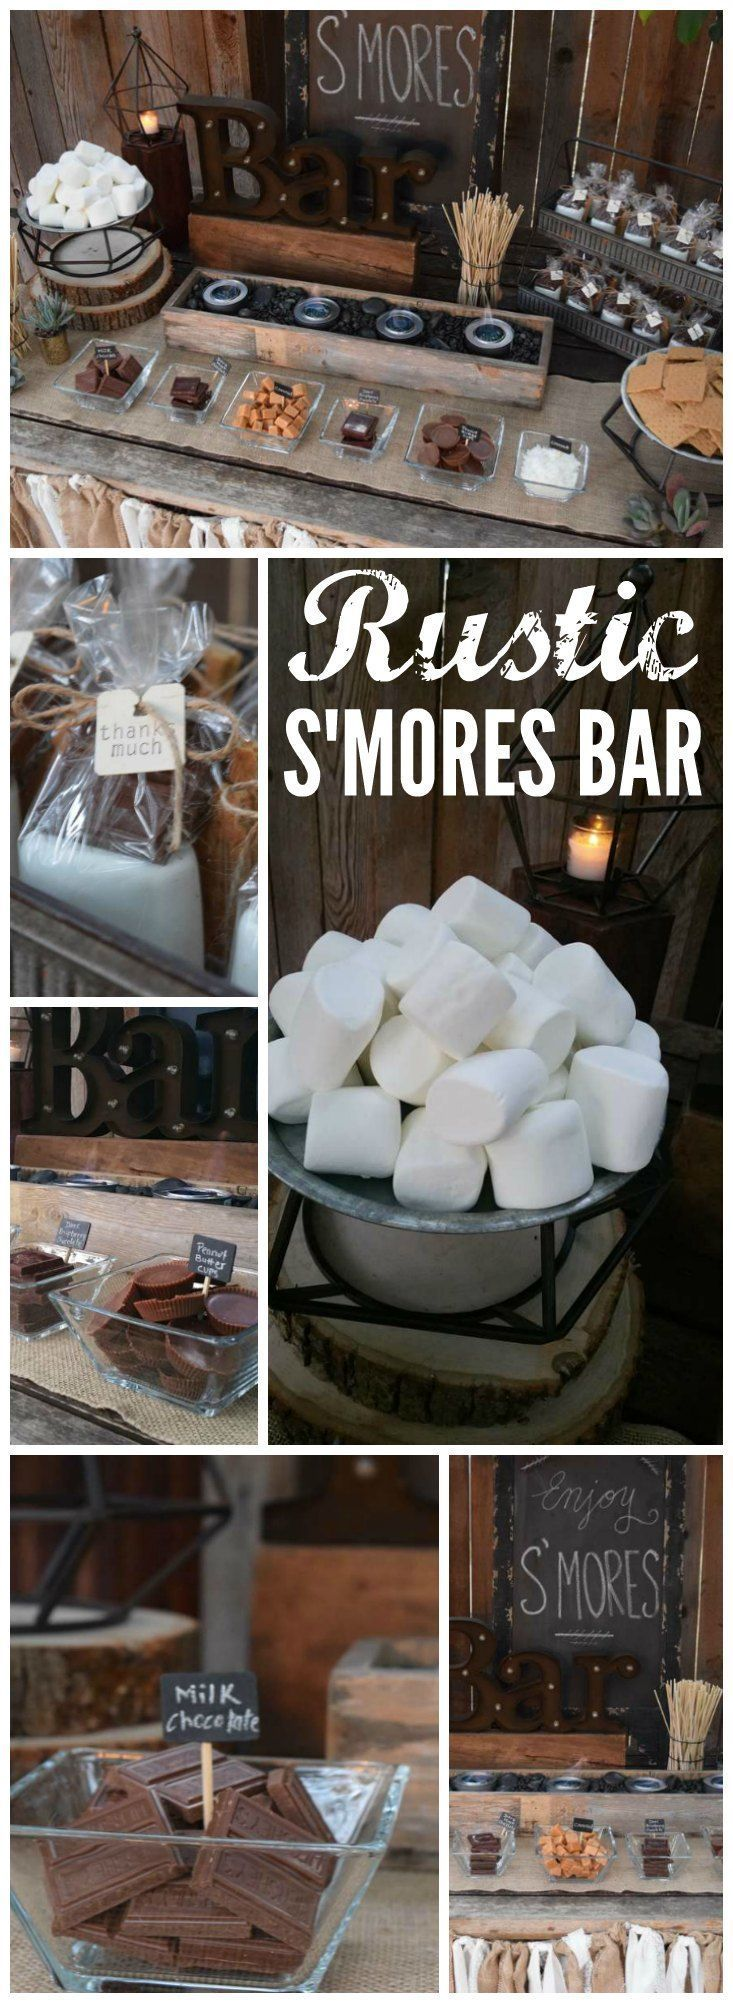 """S'mores Bar / Wedding """"Rustic S'mores Bar"""" 